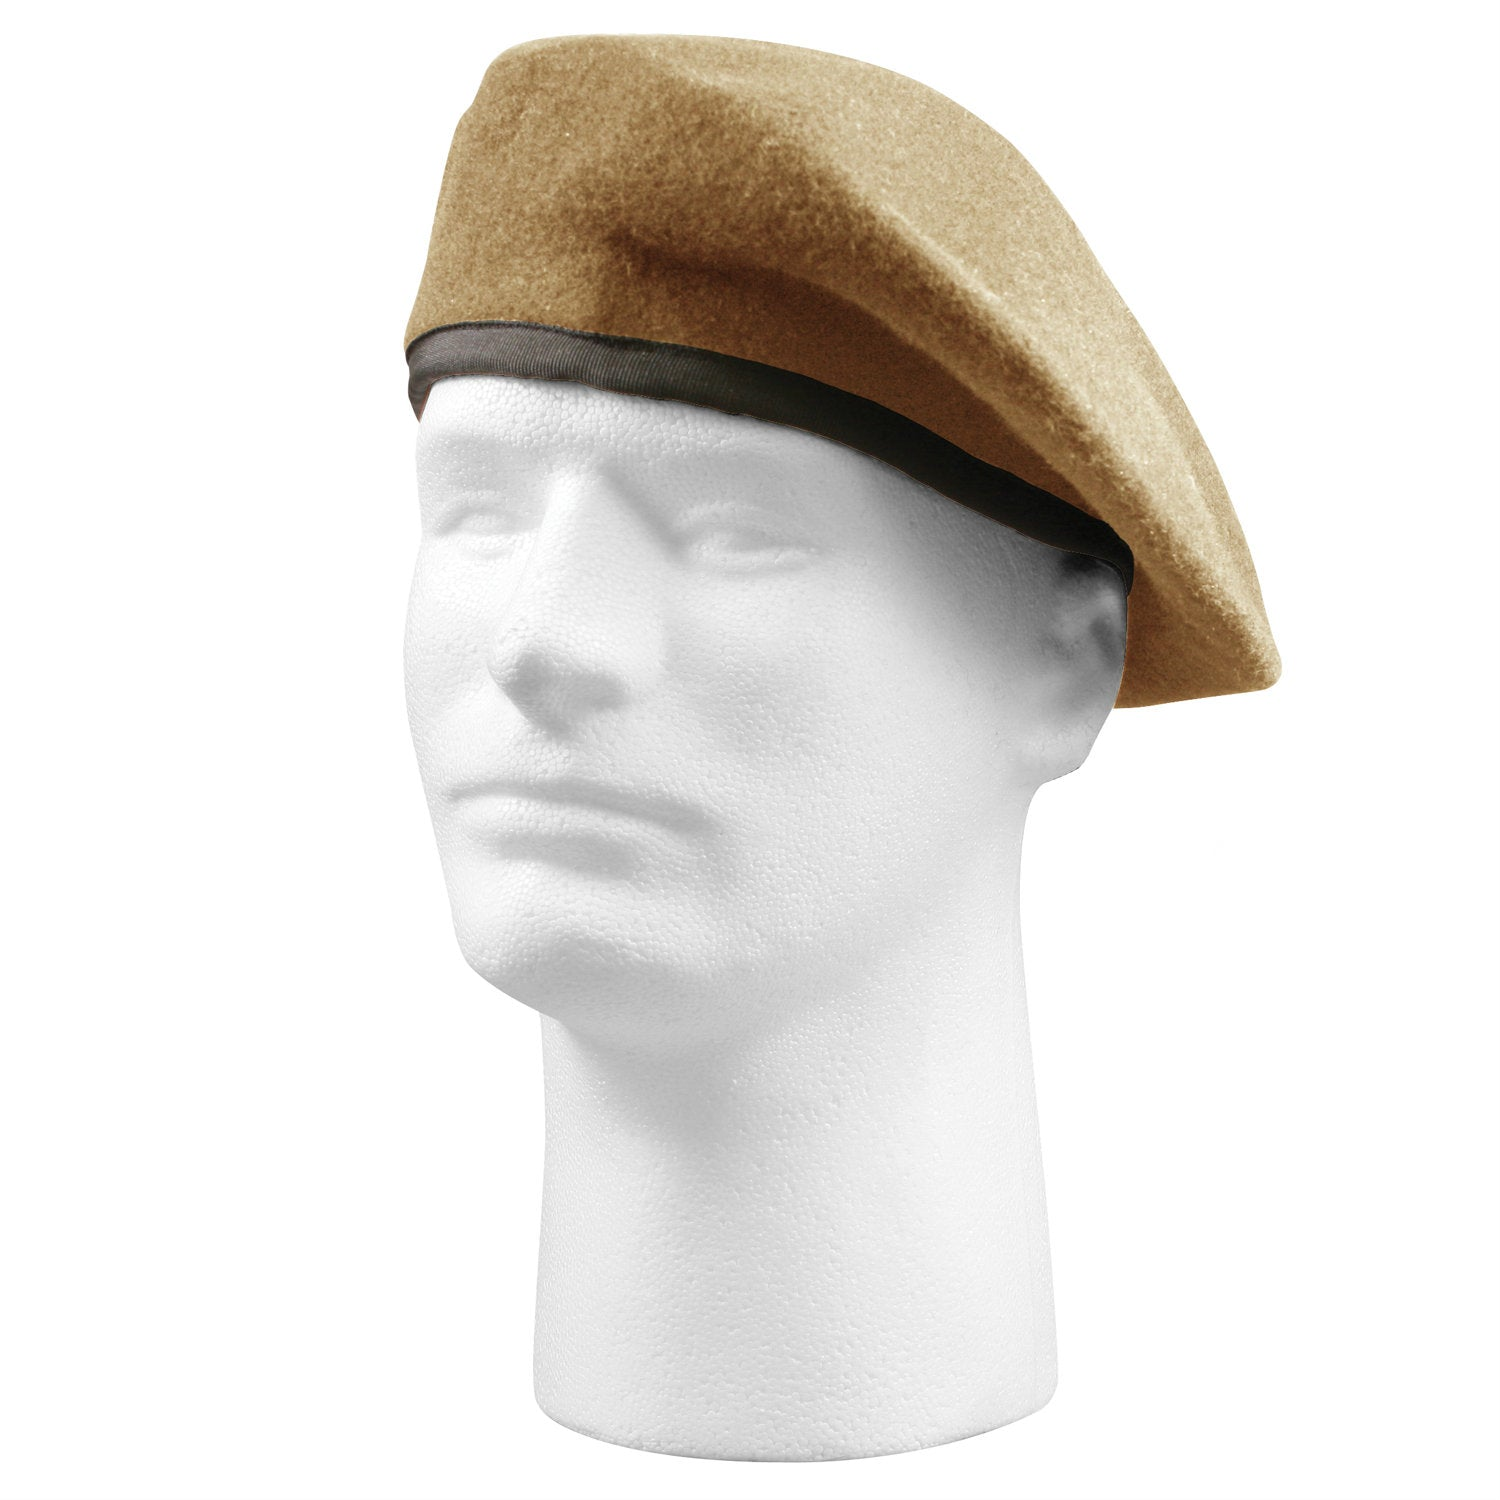 GI Type Inspection Ready Beret Tan